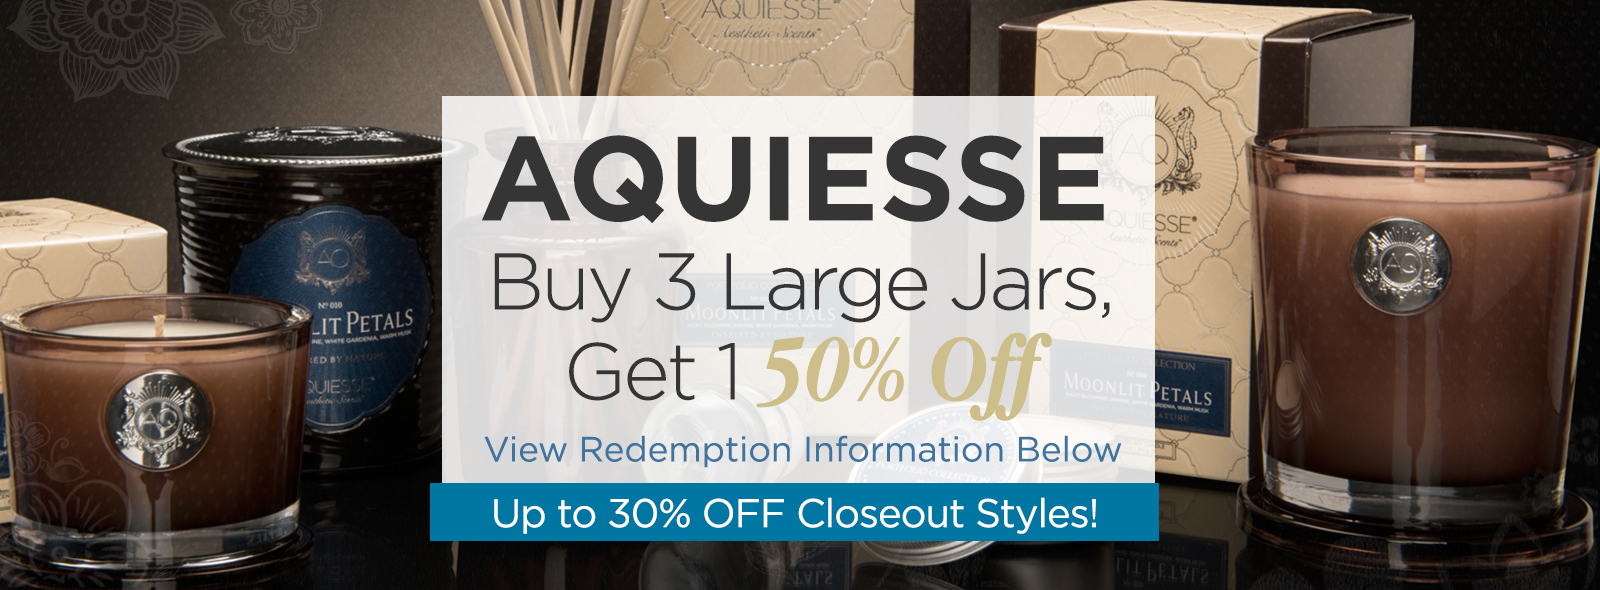 Aquiesse Candle Sale Closeout Discontinued